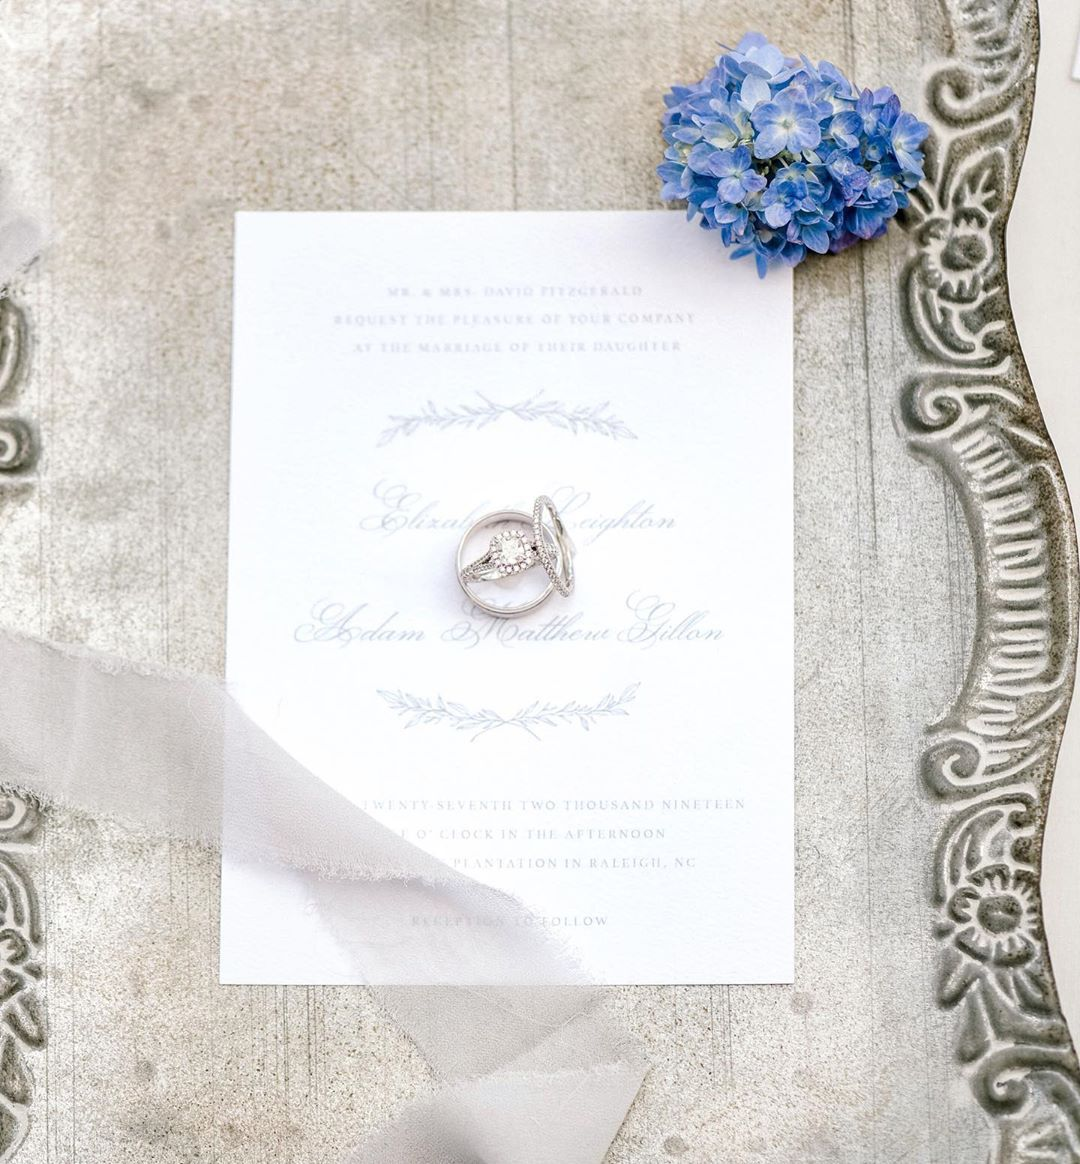 Custom invitations helps set the tone for your wedding. Your wedding invites are your guests' first interaction with your wedding and this is a perfect opportunity to set the tone of your celebration. Will it be intimate and bohemian? Or elegant and grand? Modern and trendy? Or timeless and classic? ✨Photographer | @crown_photography8 ✨Planning | @weddingsbytiffany ✨Venue | @pemberleyplantation ✨Floral | @florescence.design ✨Stationary | @empaper.co ✨Dress | @uniquelyubridal ✨Cake | @beautyandba